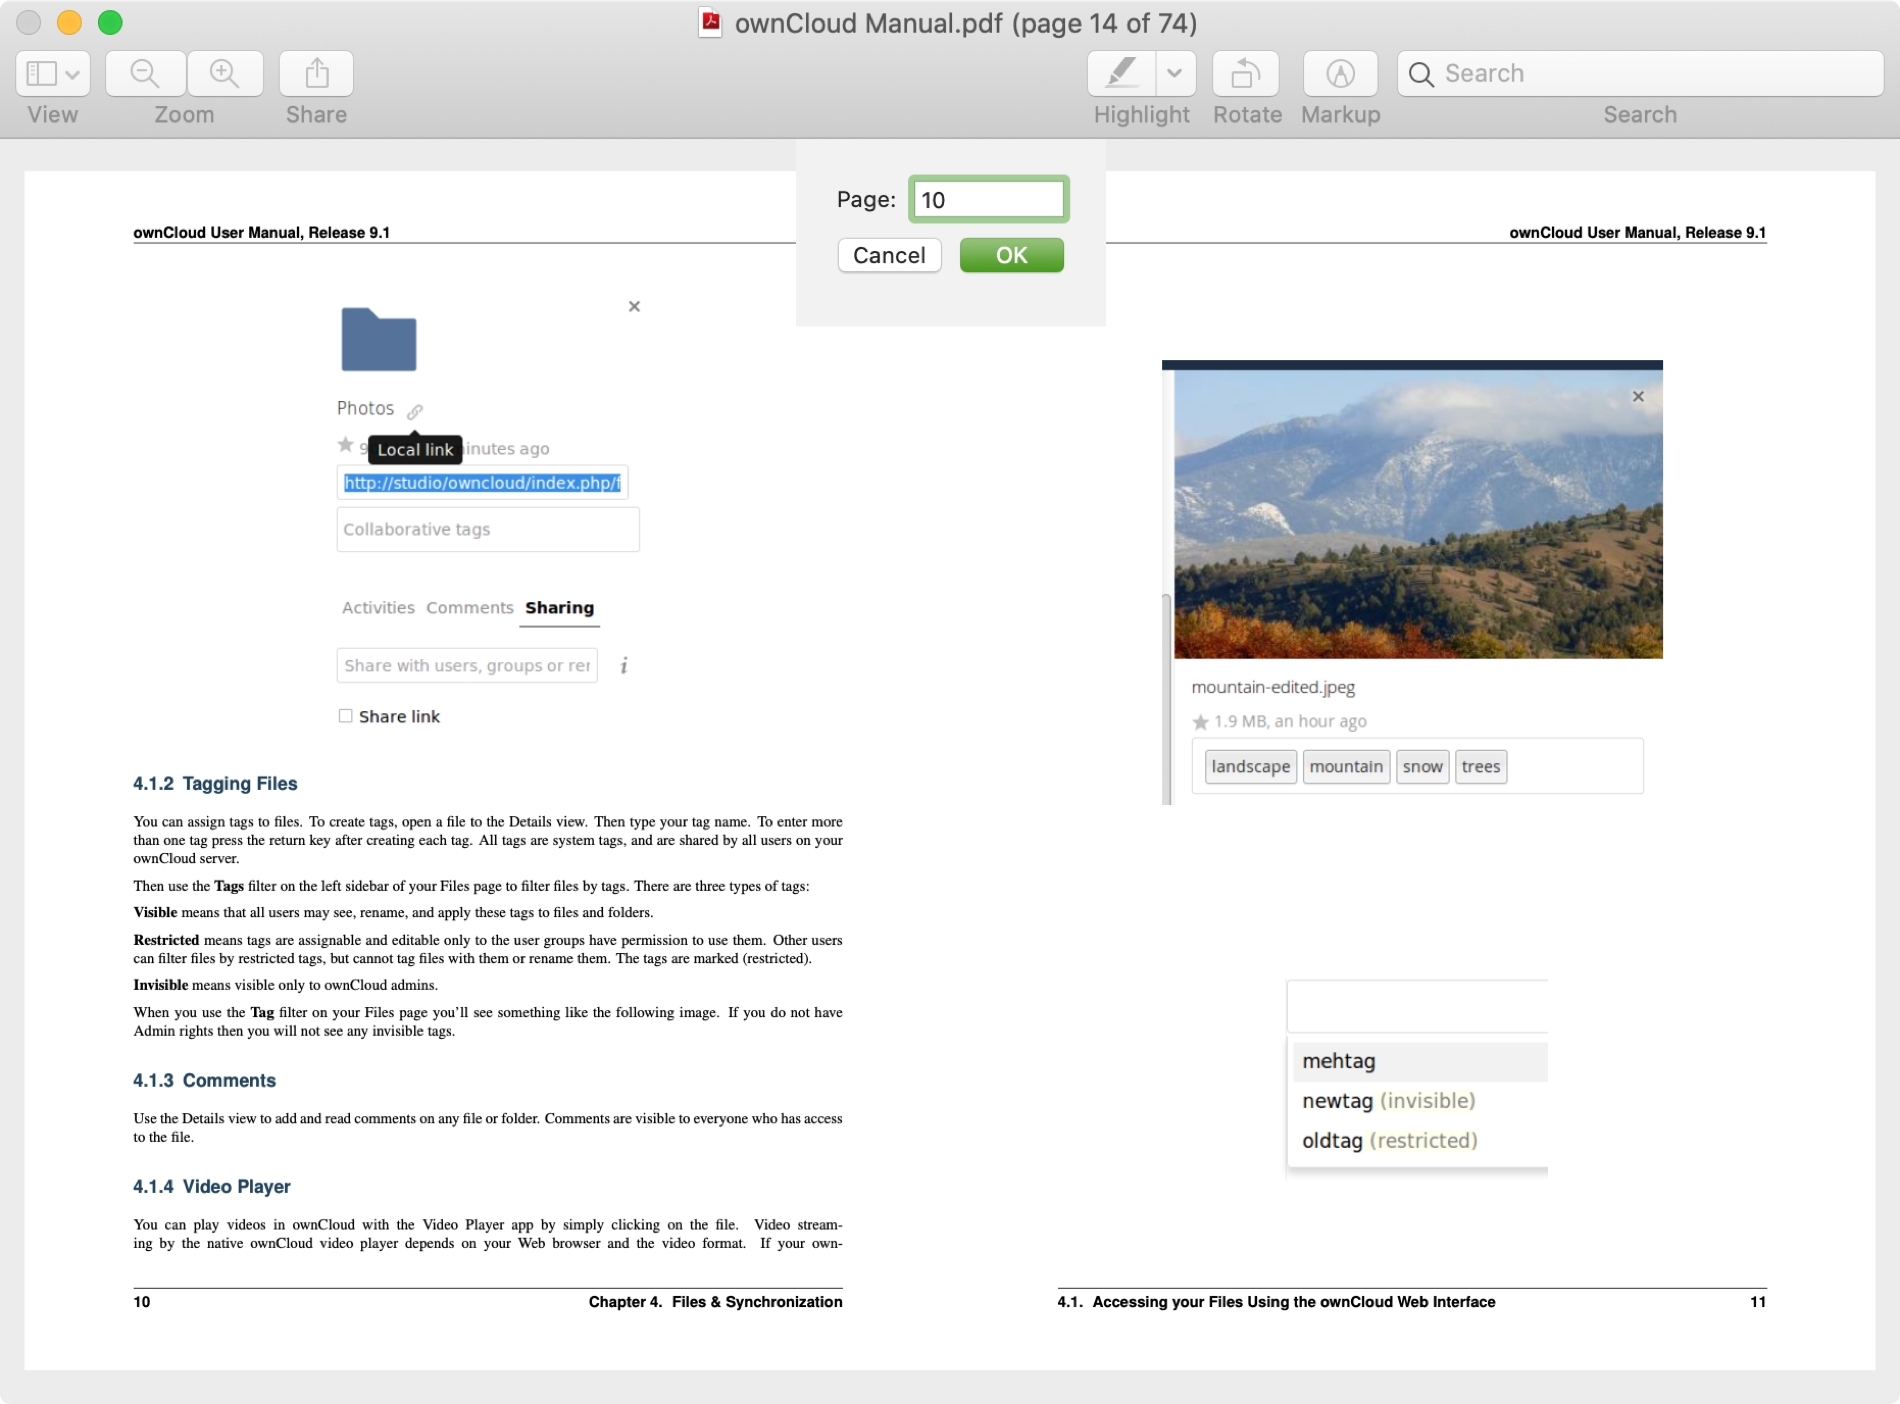 Go To Page in Preview PDF